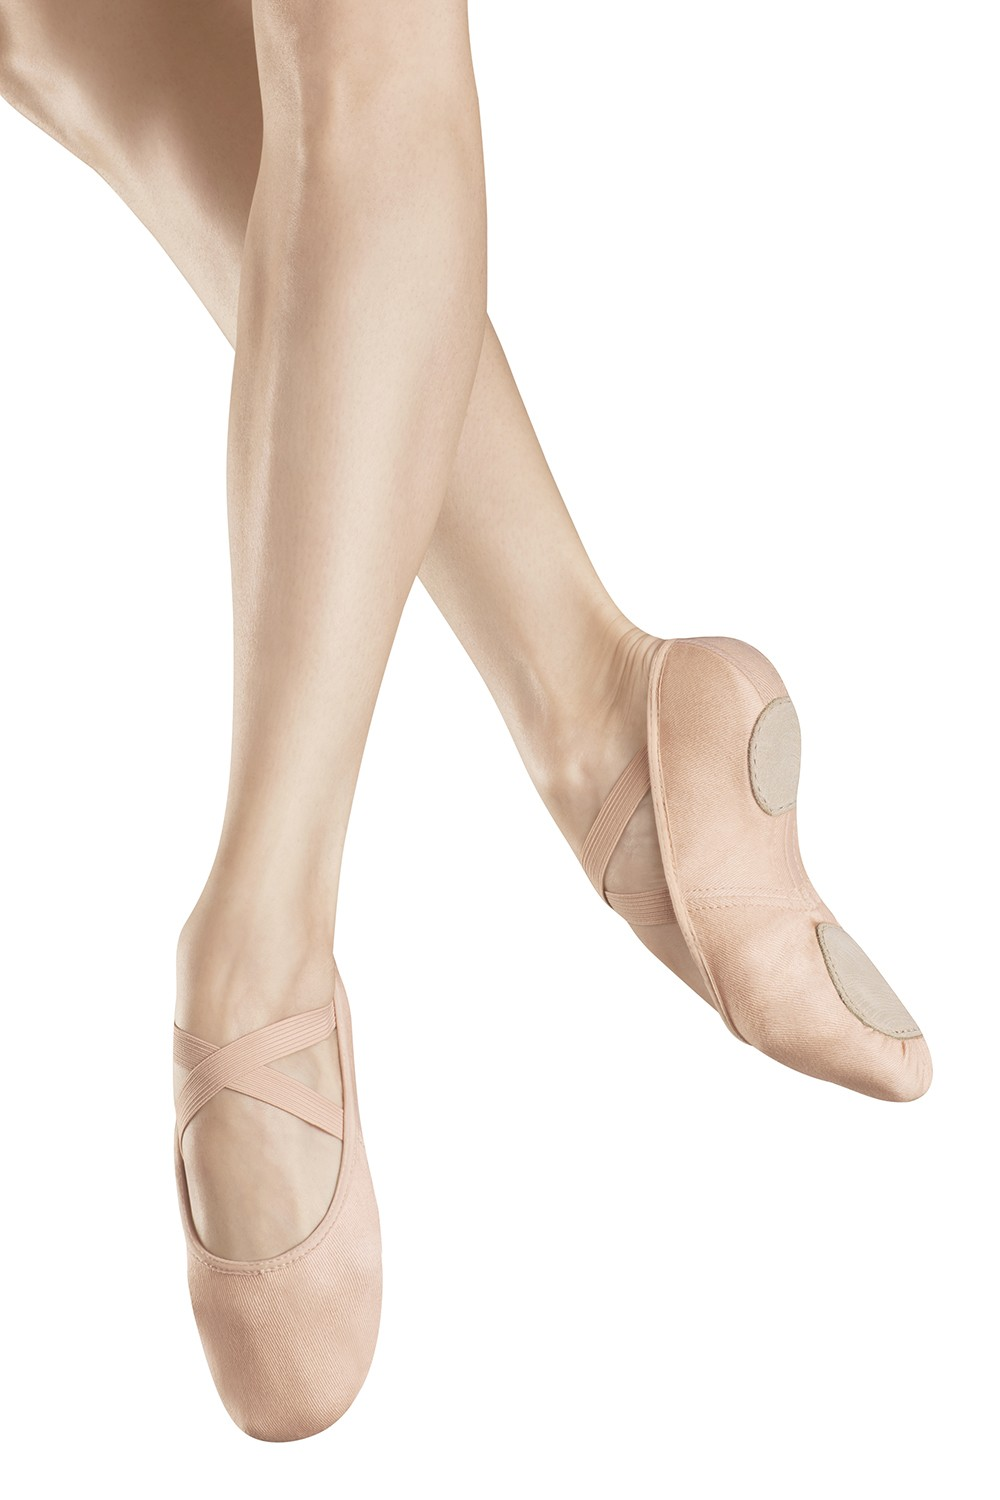 Infinity  Women's Ballet Shoes